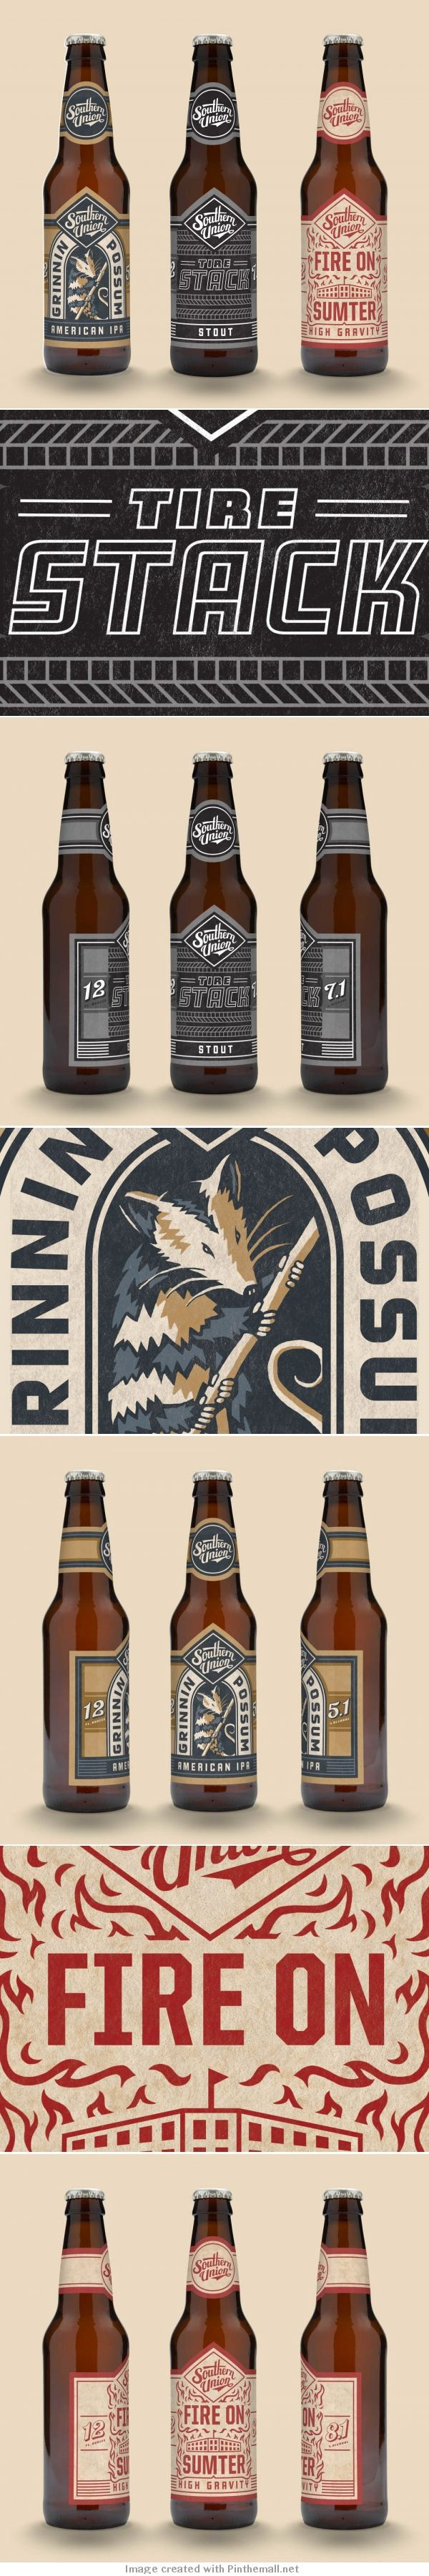 These illustrations are effective due to limited colour palette enhanced by the simple illustration. The simple illustration and colour use causes the labels to stand out due to having a bold nature, drawing in the target audience. The typeface used for the company's name brings to the label the 'southern hospitality' feel which the company aimed to evoke through the presentation of the their beer.